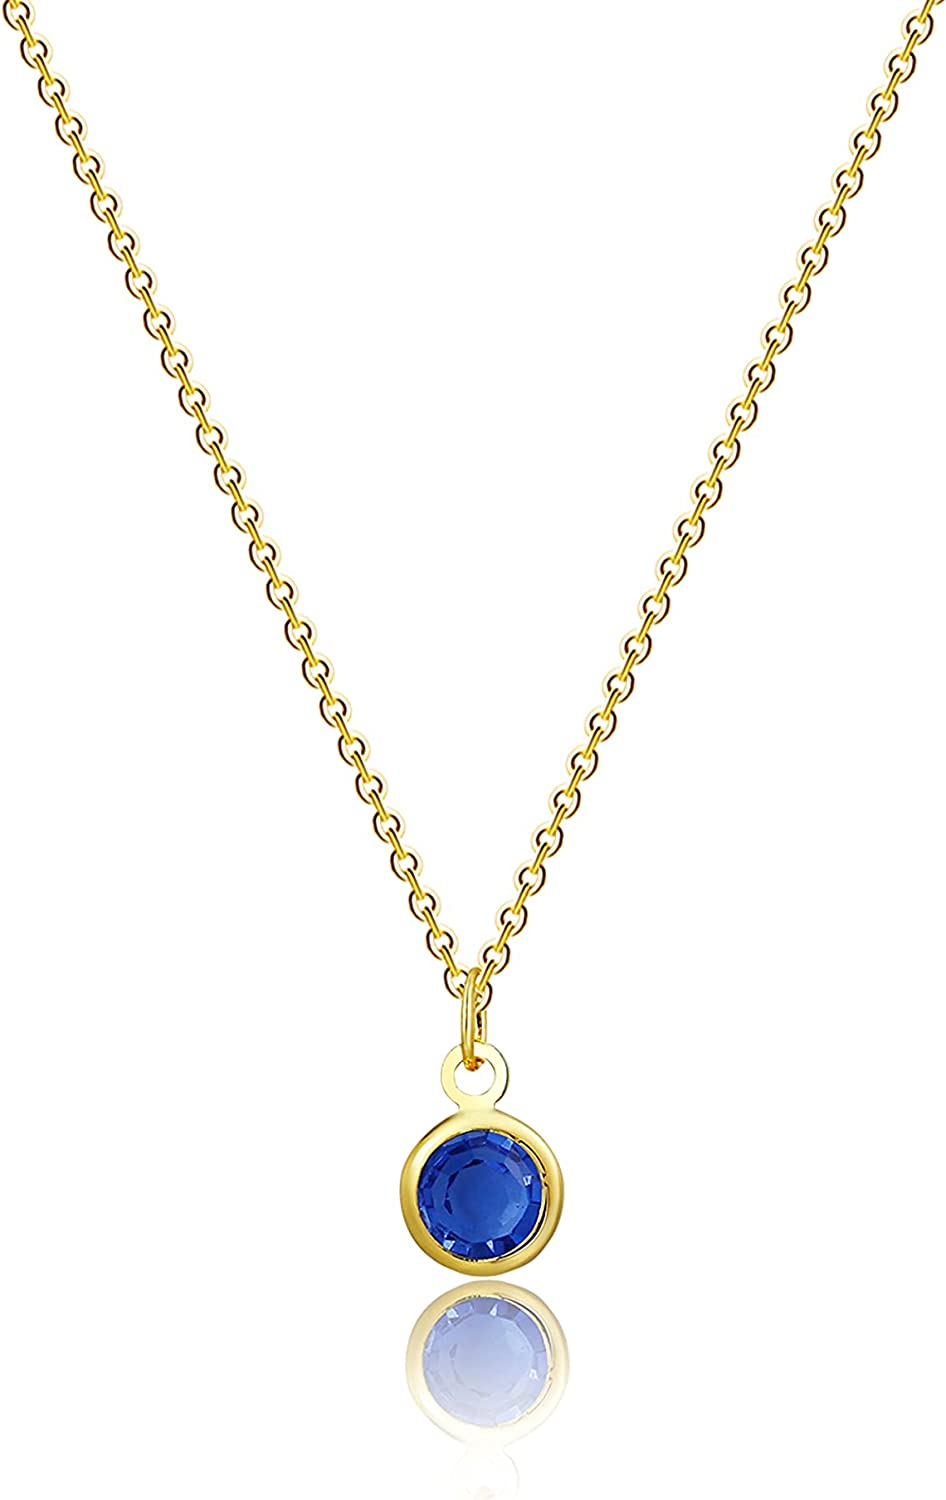 Viromy 18K Gold Plated Dainty Birthstone Pendant Necklace Personalized Minimalist Simulated Diamond Cubic Zirconia Birthstone Charm Everyday Necklaces Simple Birthday Gift Daily Jewelry for Women